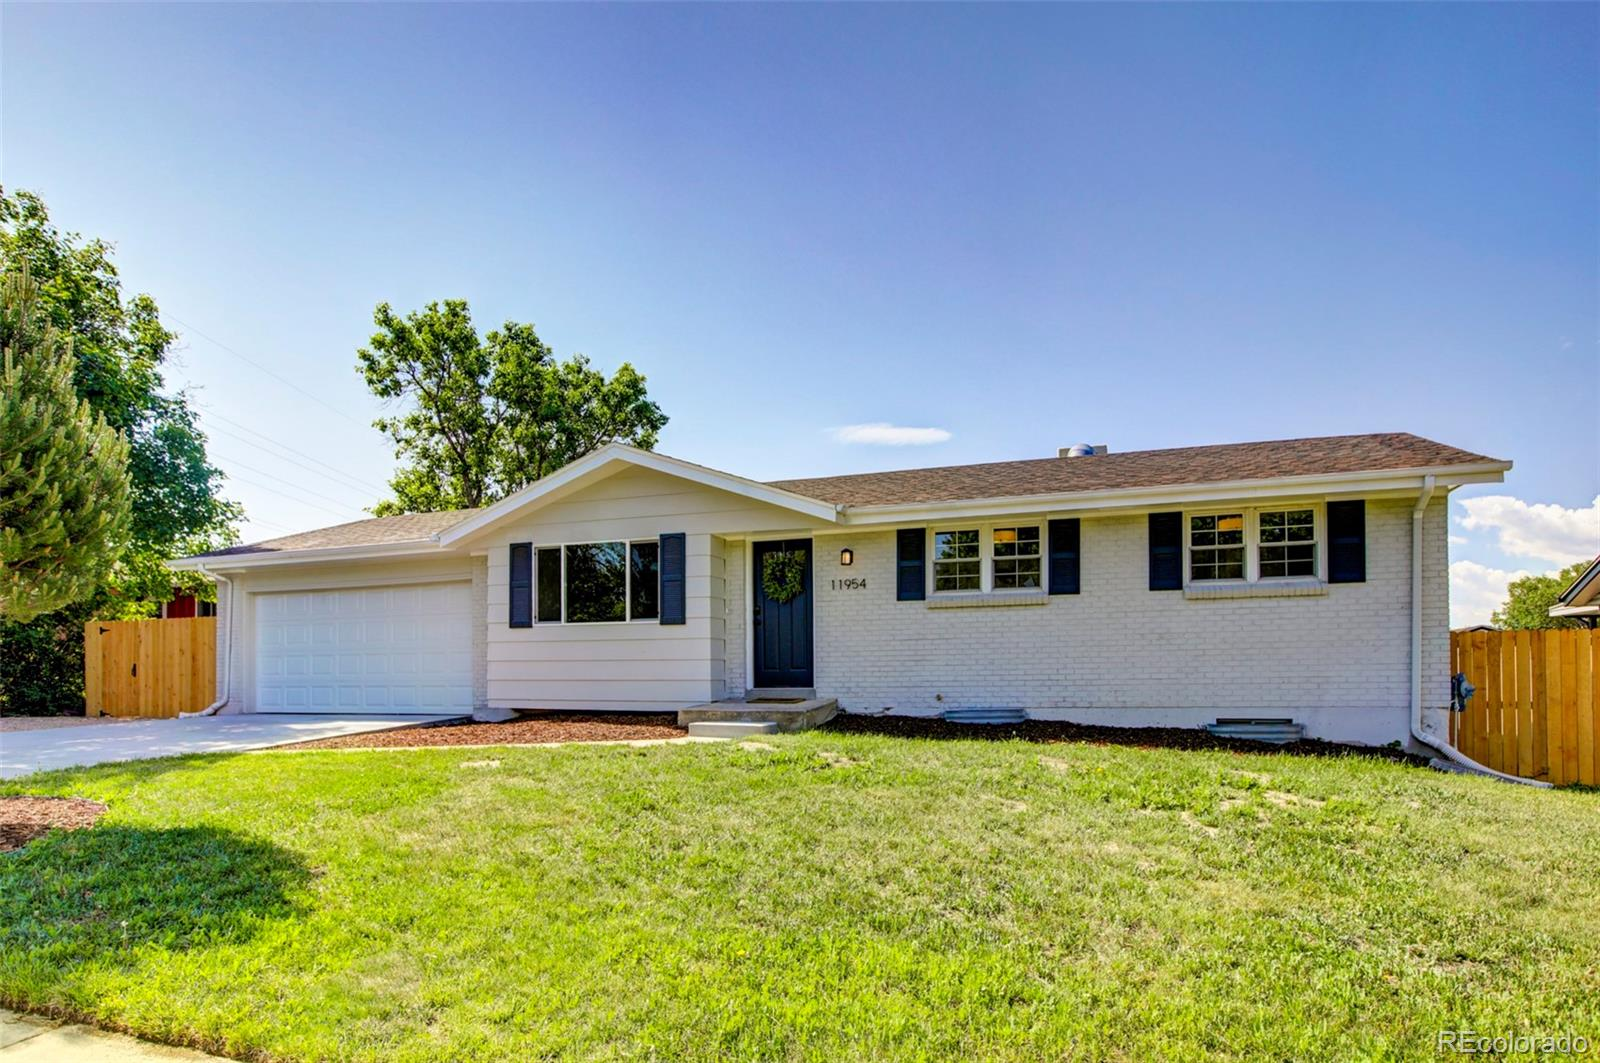 11954 W 65th Place Property Photo - Arvada, CO real estate listing